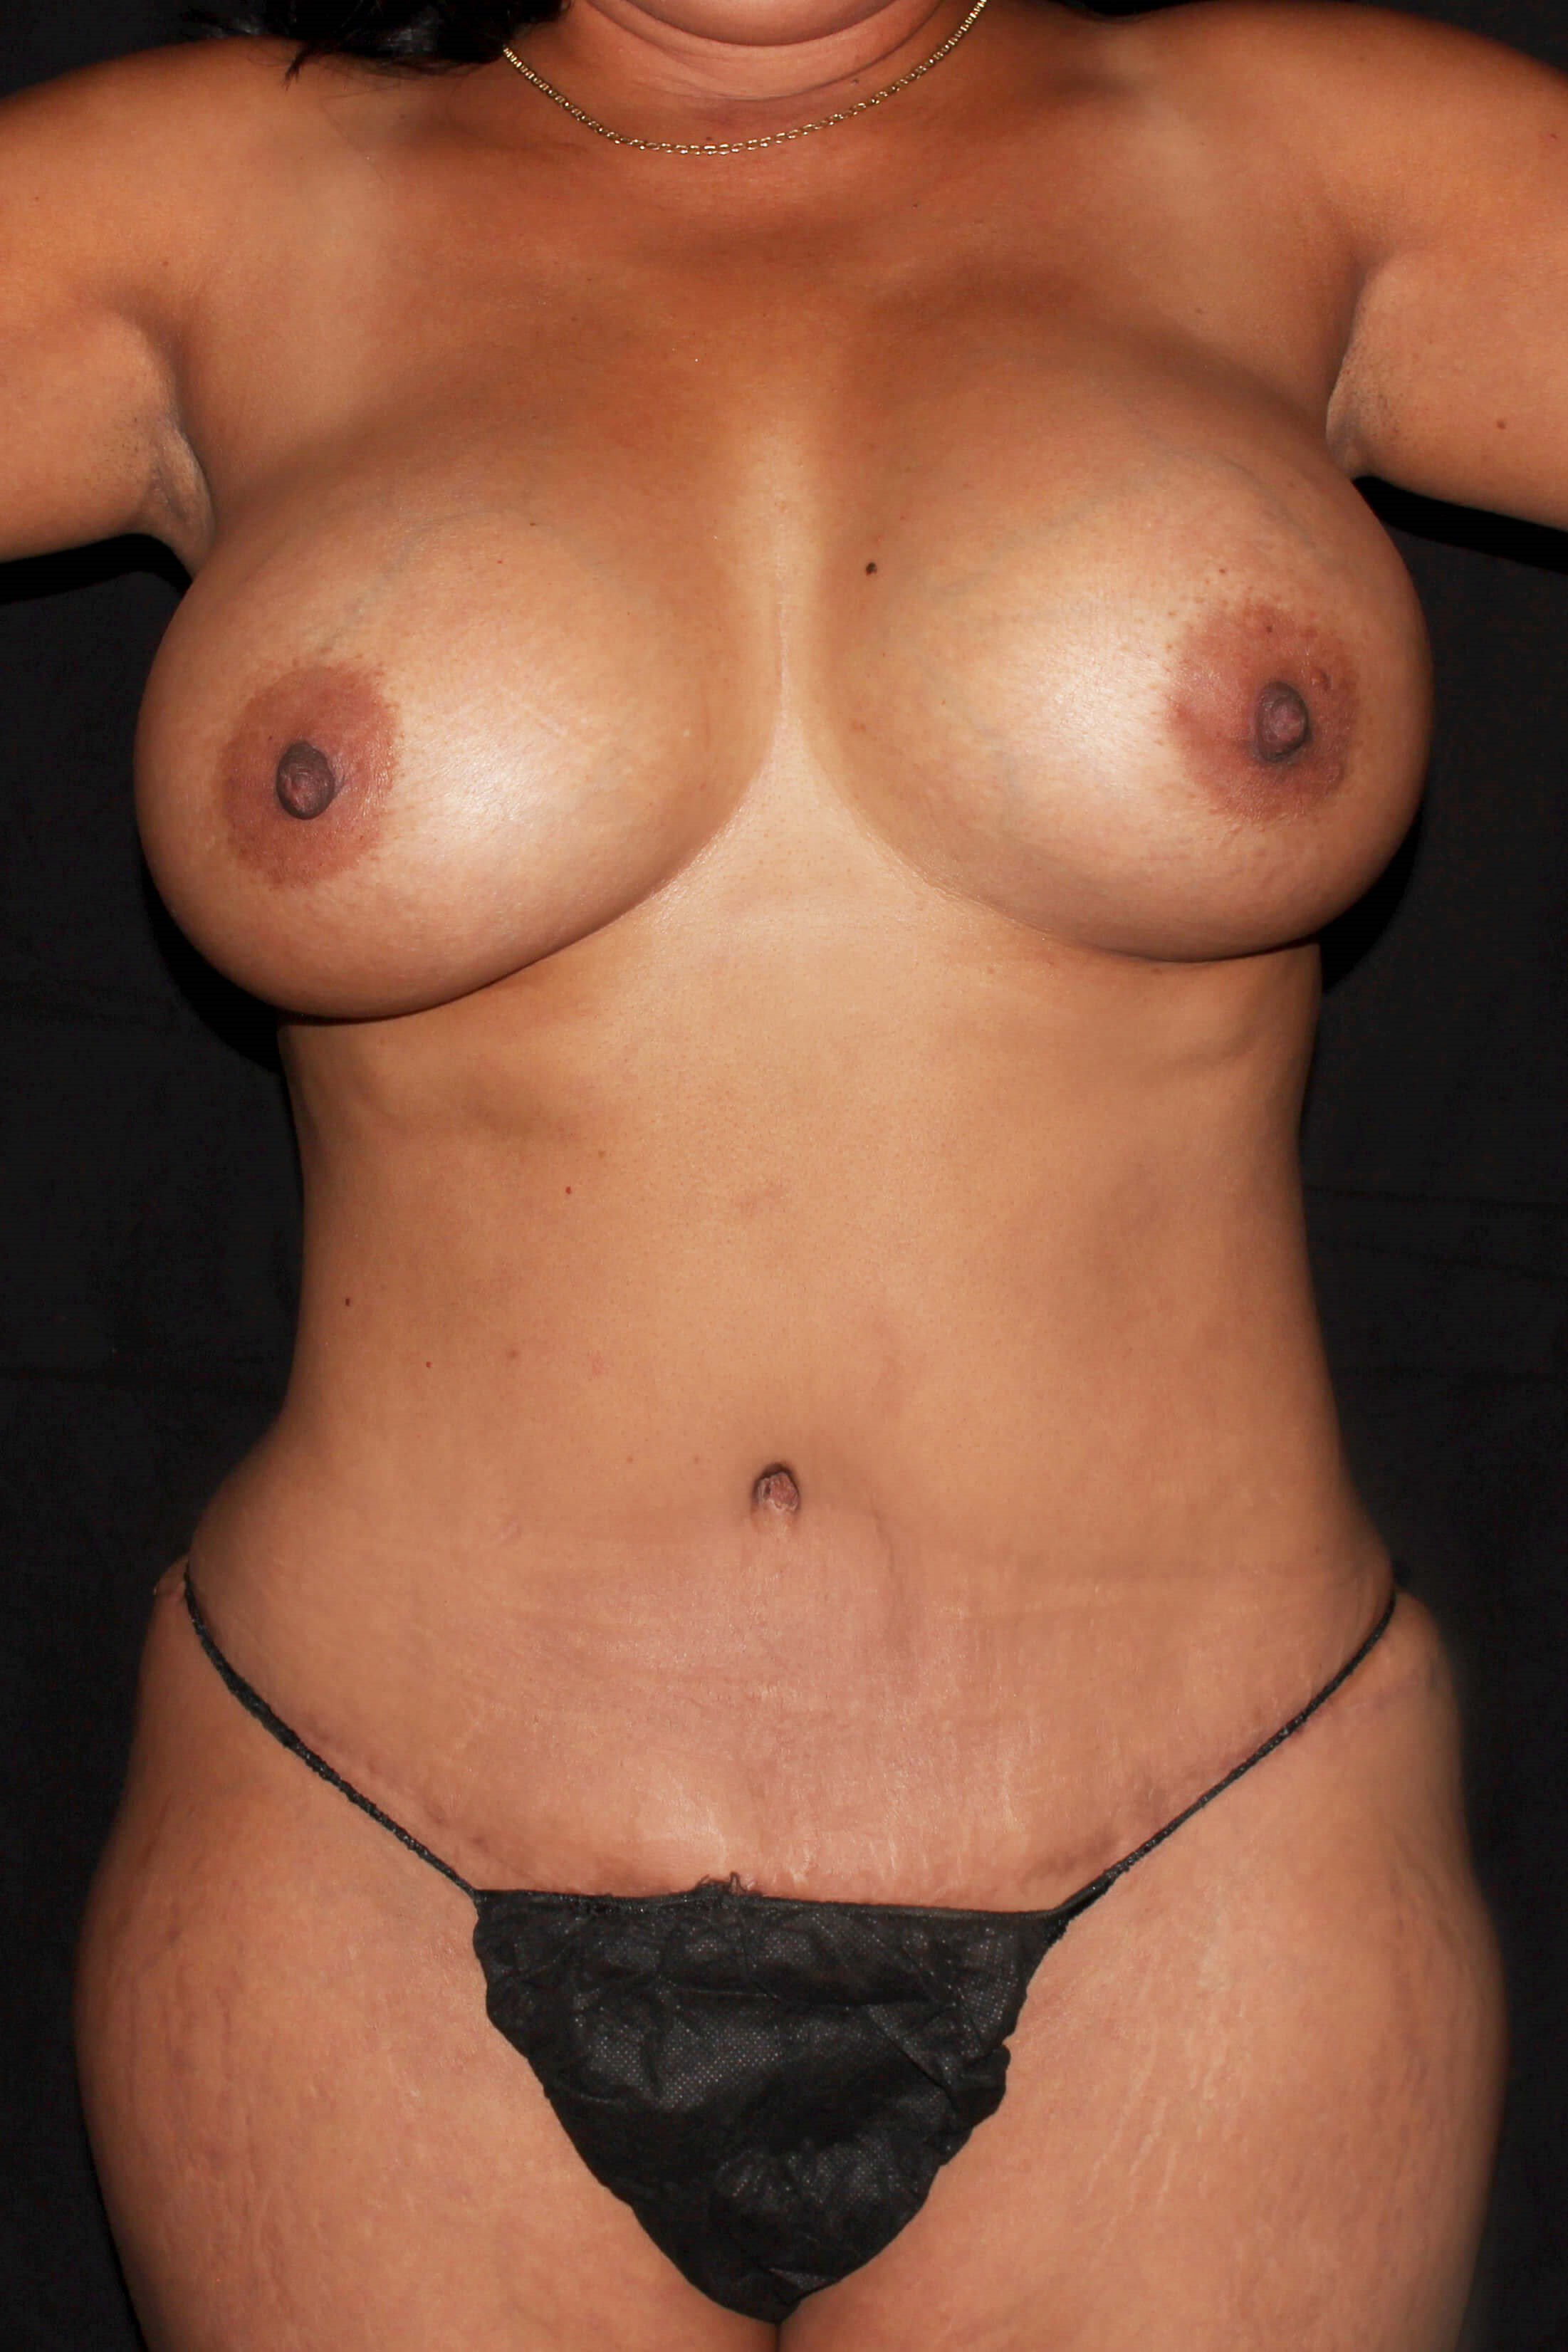 Breast Augmentation and Mommy Makeover After - Mommy Makeover